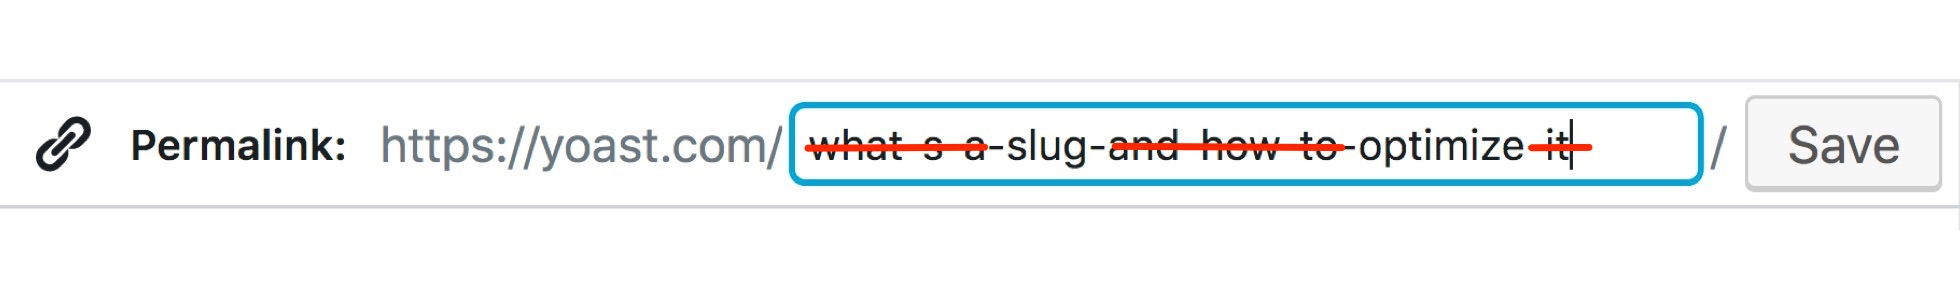 Slug without function words